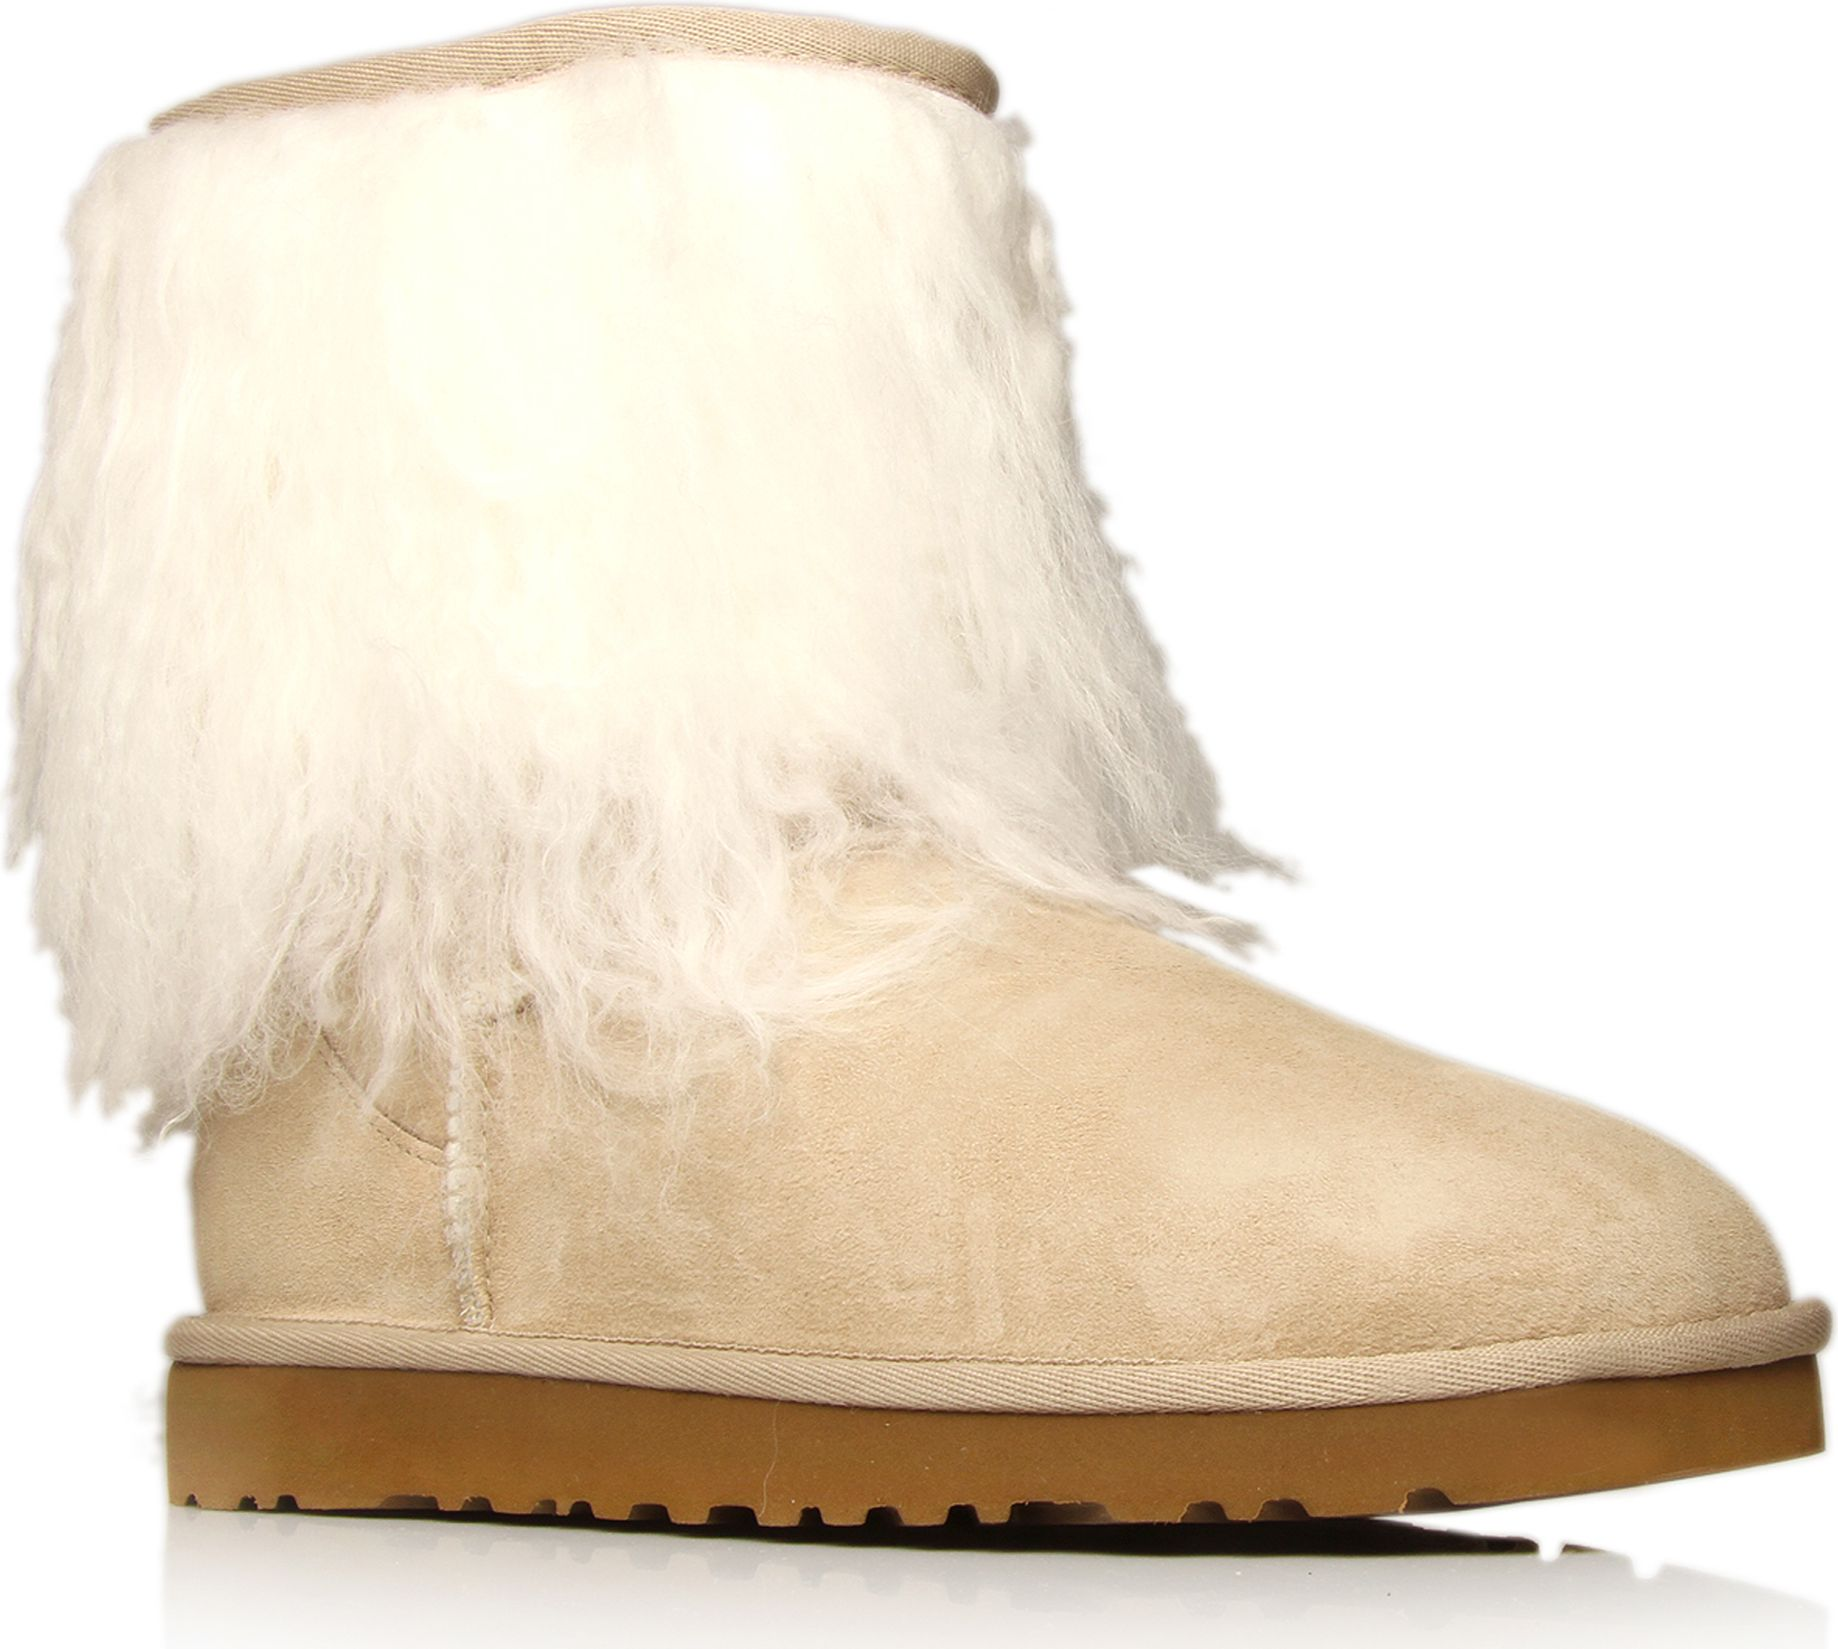 Are All Uggs Made With Sheepskin